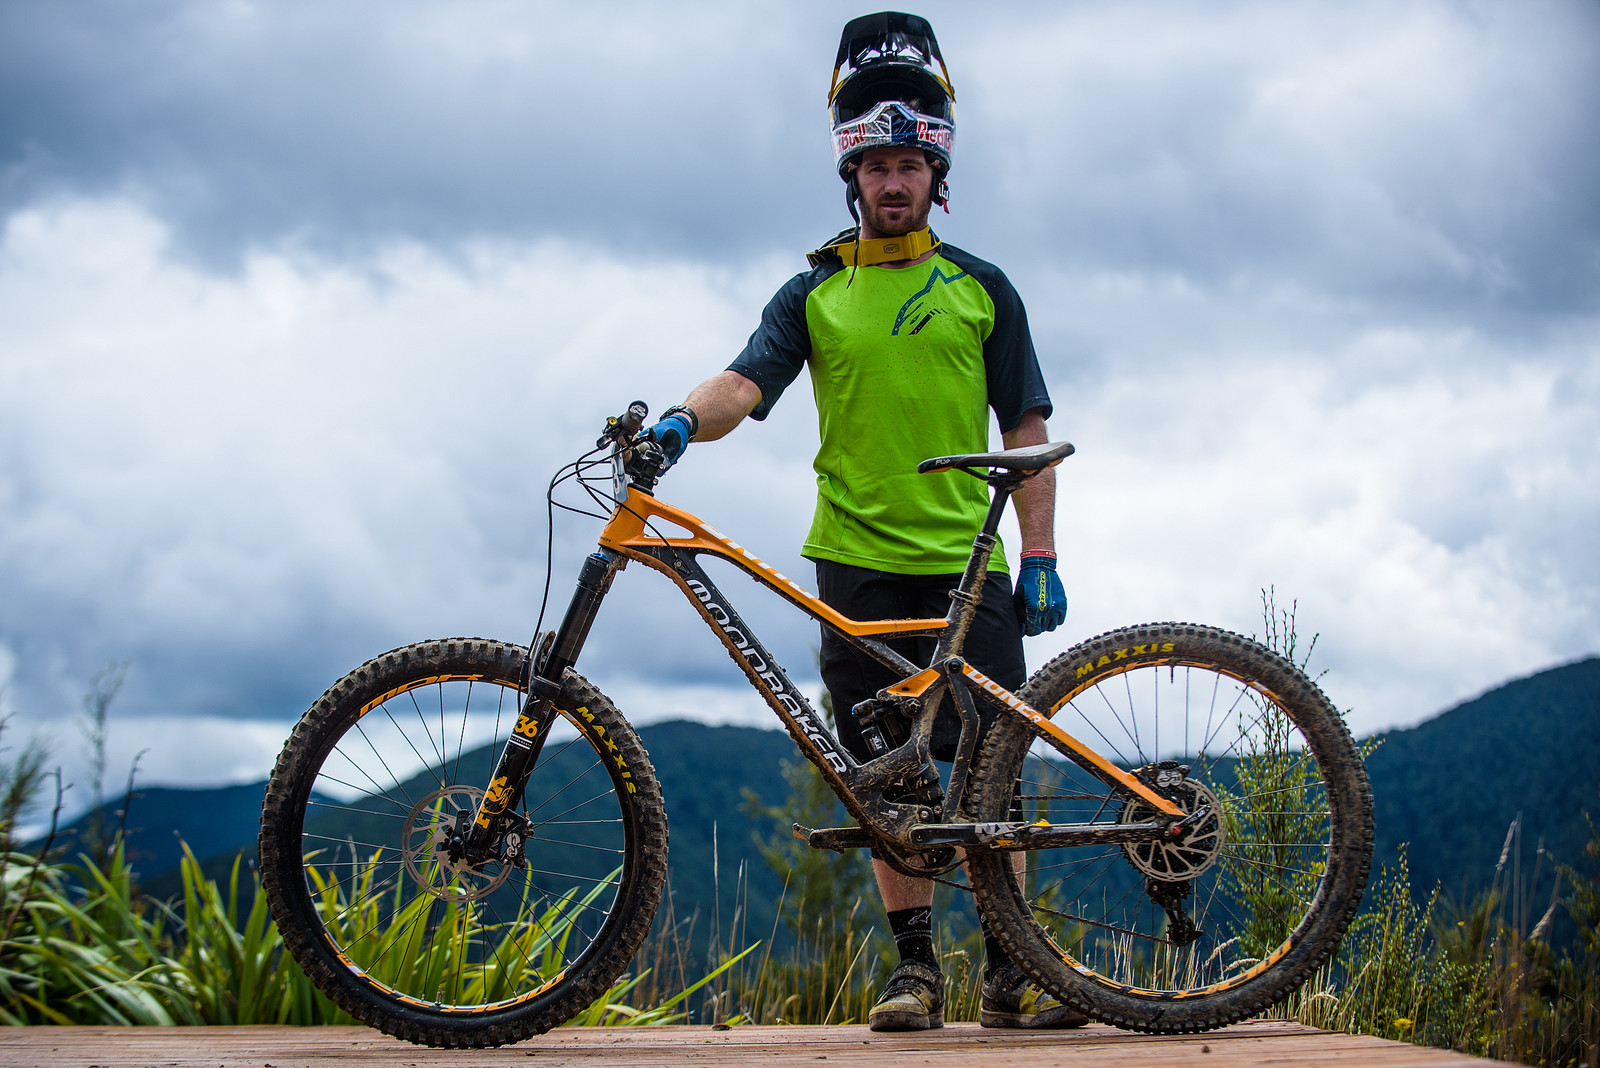 Brook MacDonald's Mondraker Dune - Pro Enduro Bikes from New Zealand - Mountain Biking Pictures - Vital MTB